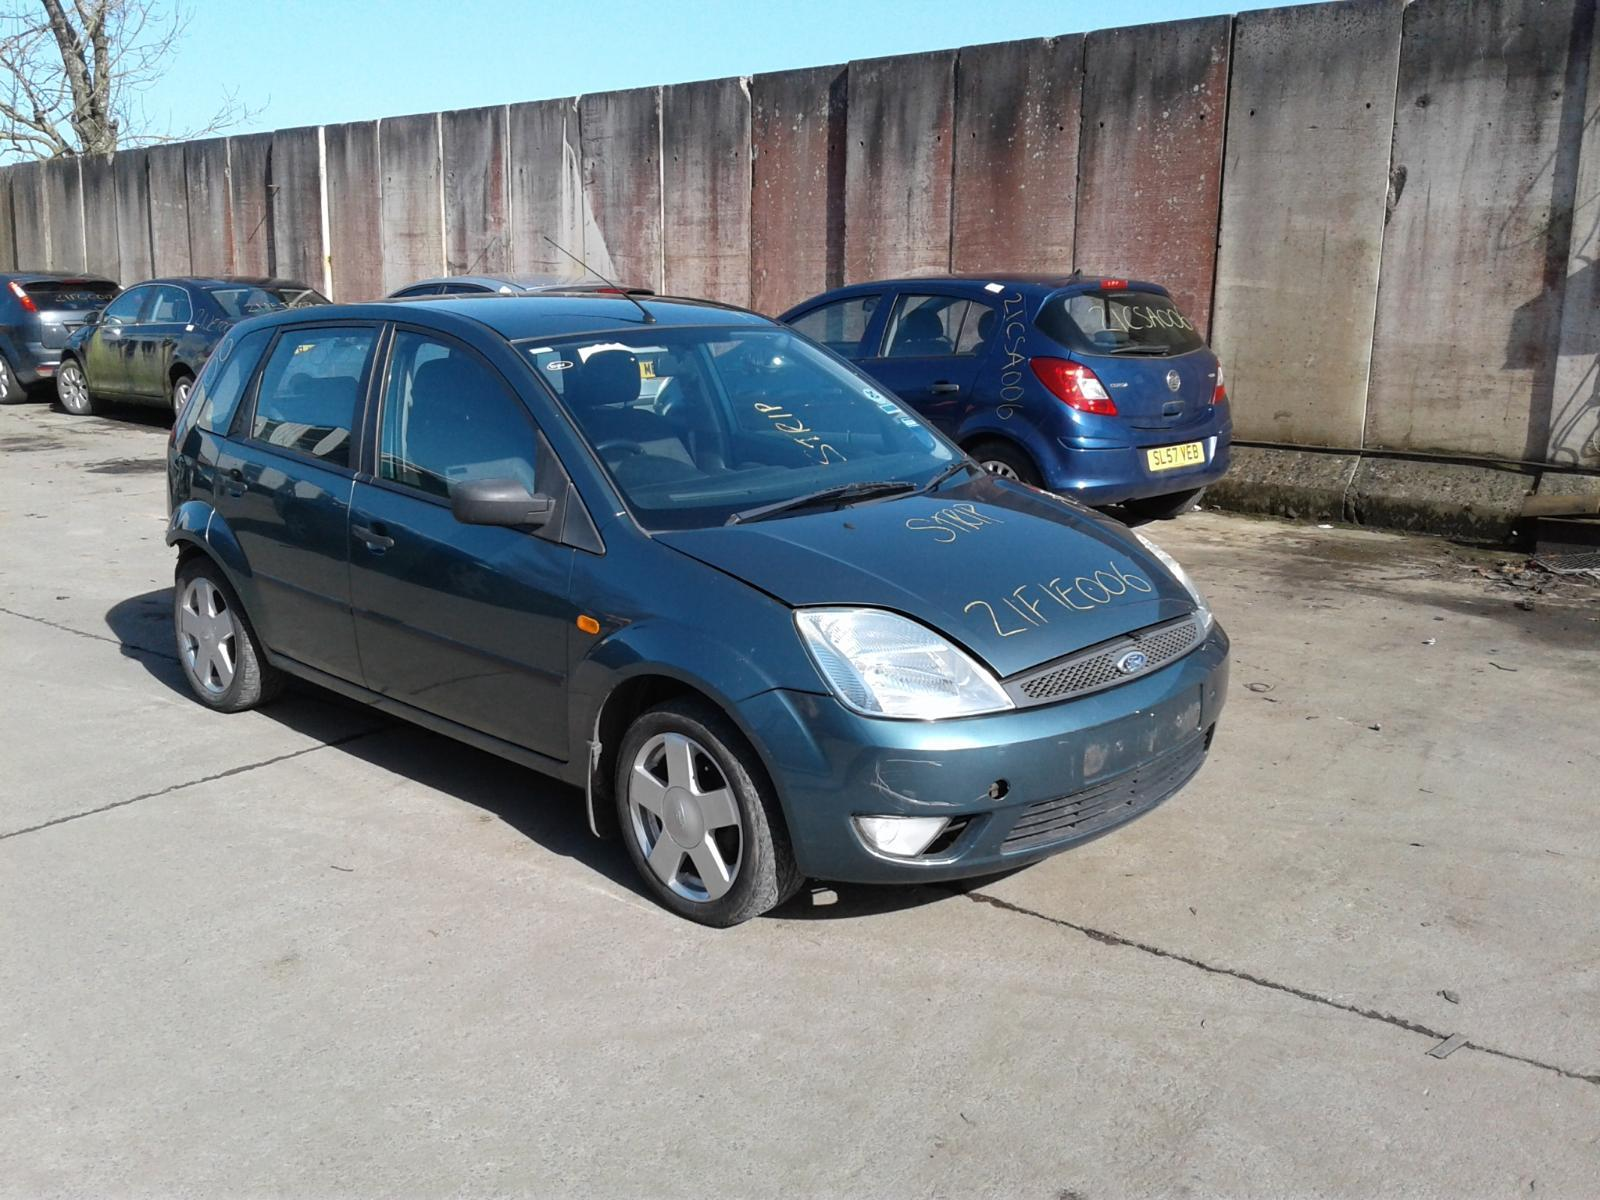 2002 FORD FIESTA Image